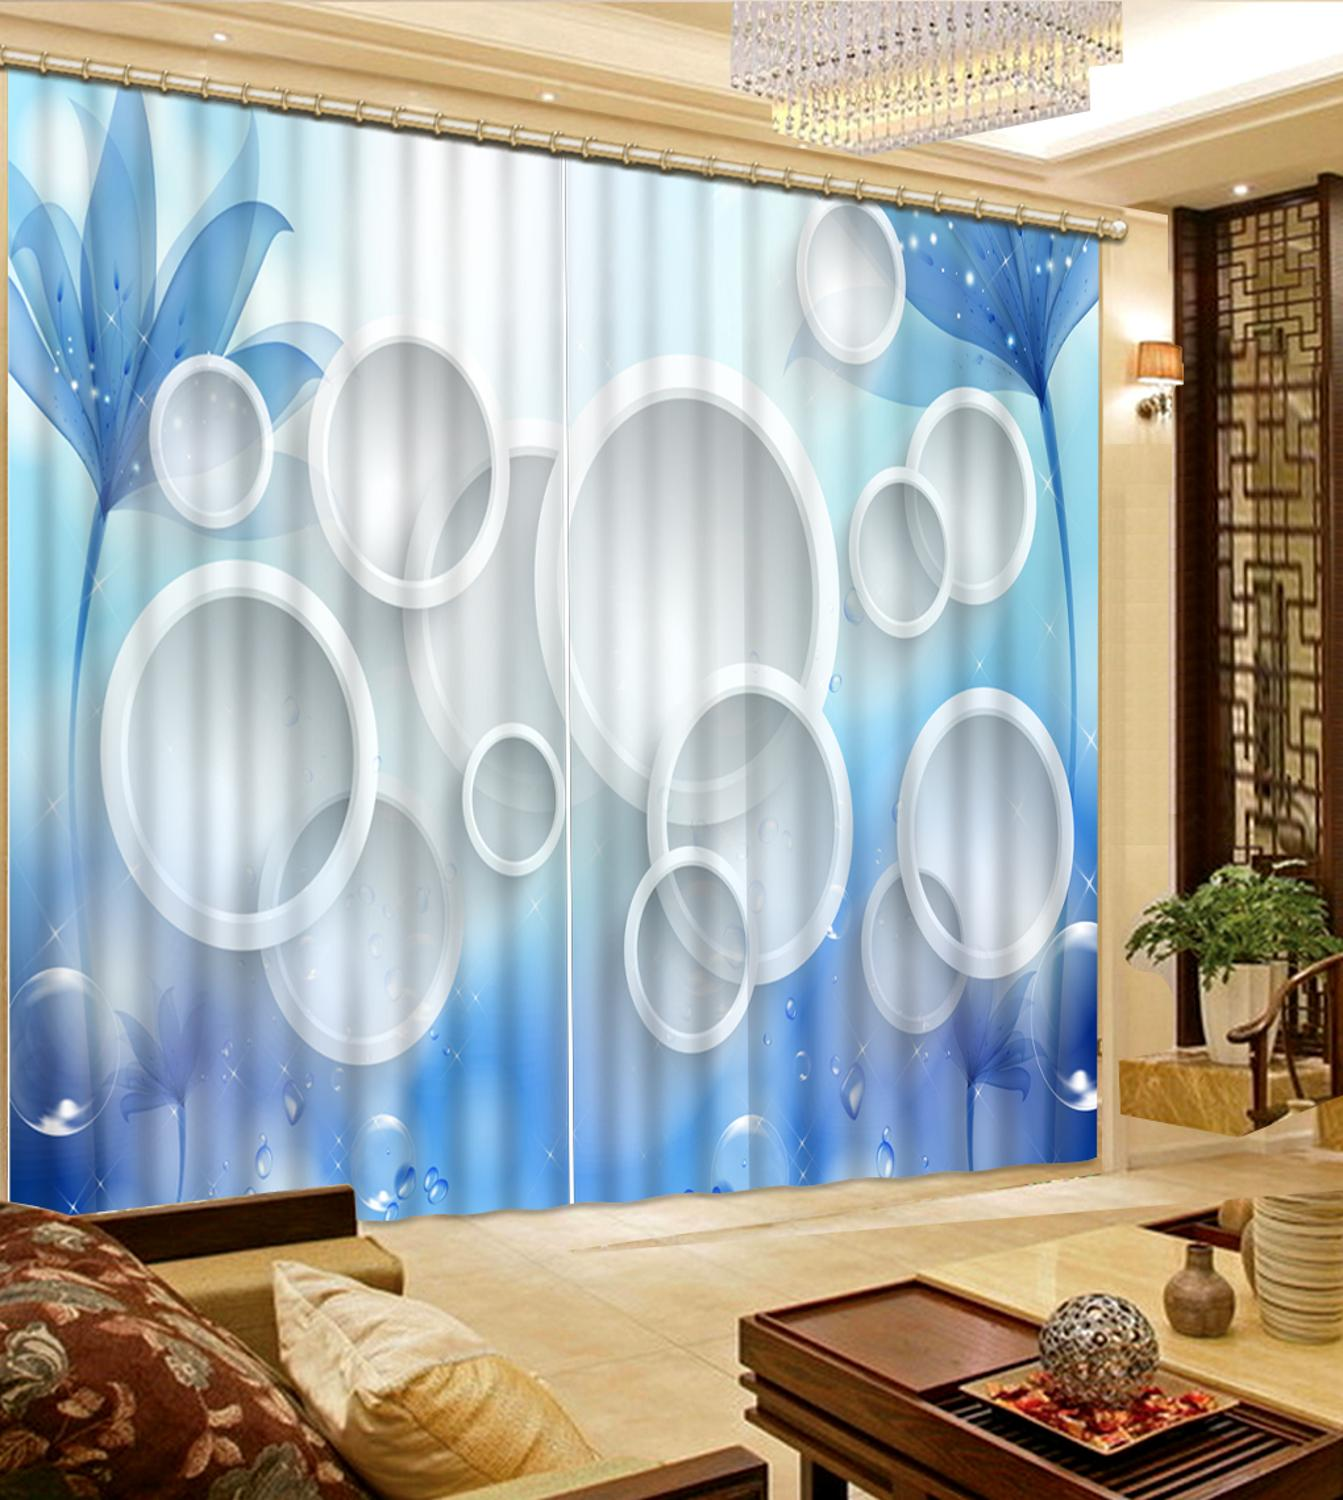 Simple and stylish customize 3D curtains Circle living room blackout curtains height modern curtainsSimple and stylish customize 3D curtains Circle living room blackout curtains height modern curtains